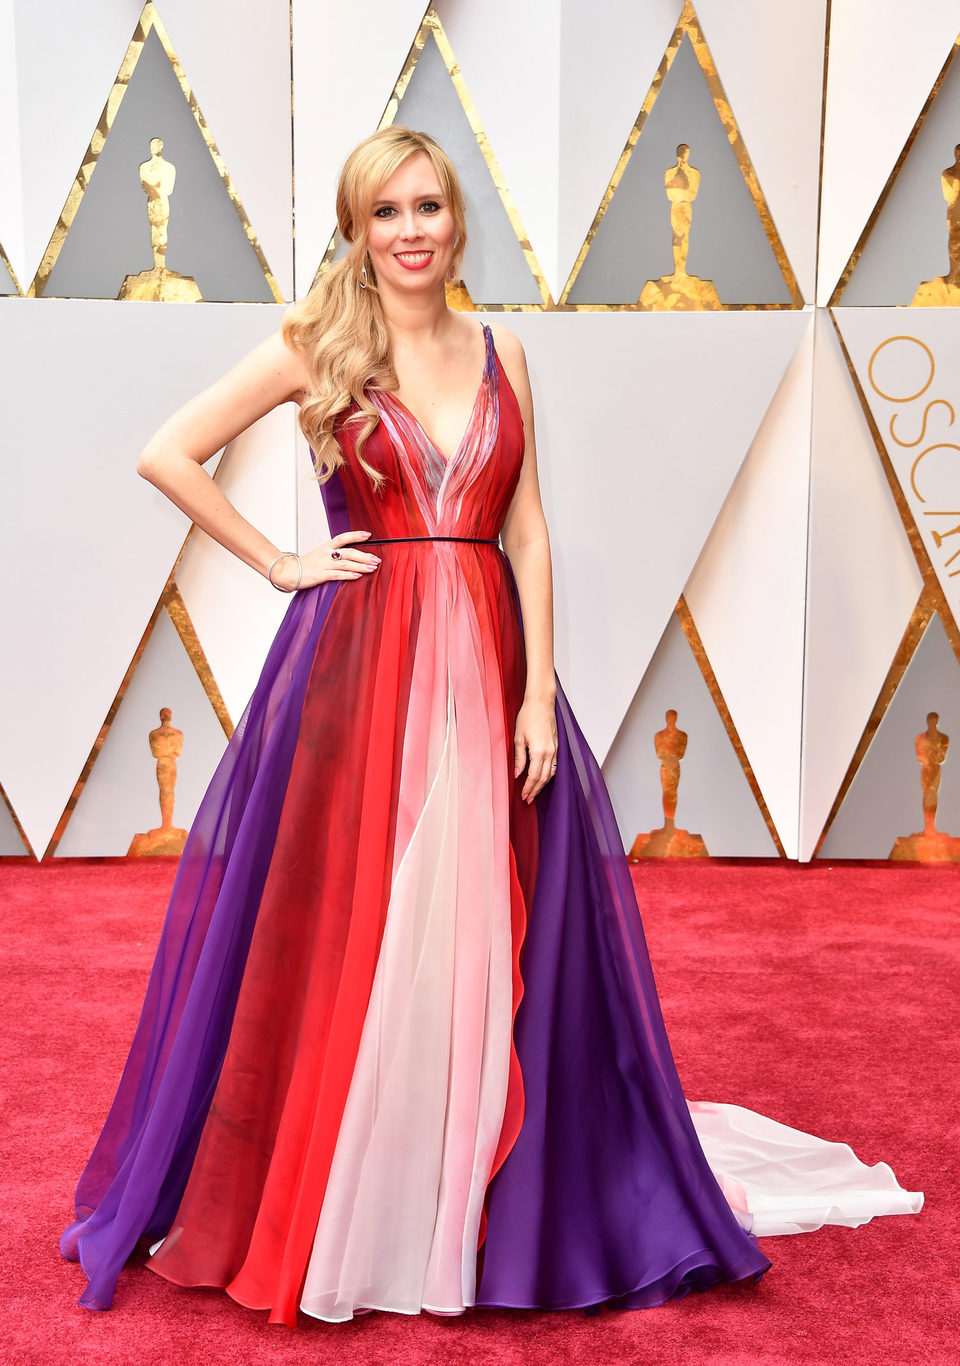 Image result for Allison Schroeder oscars 2017